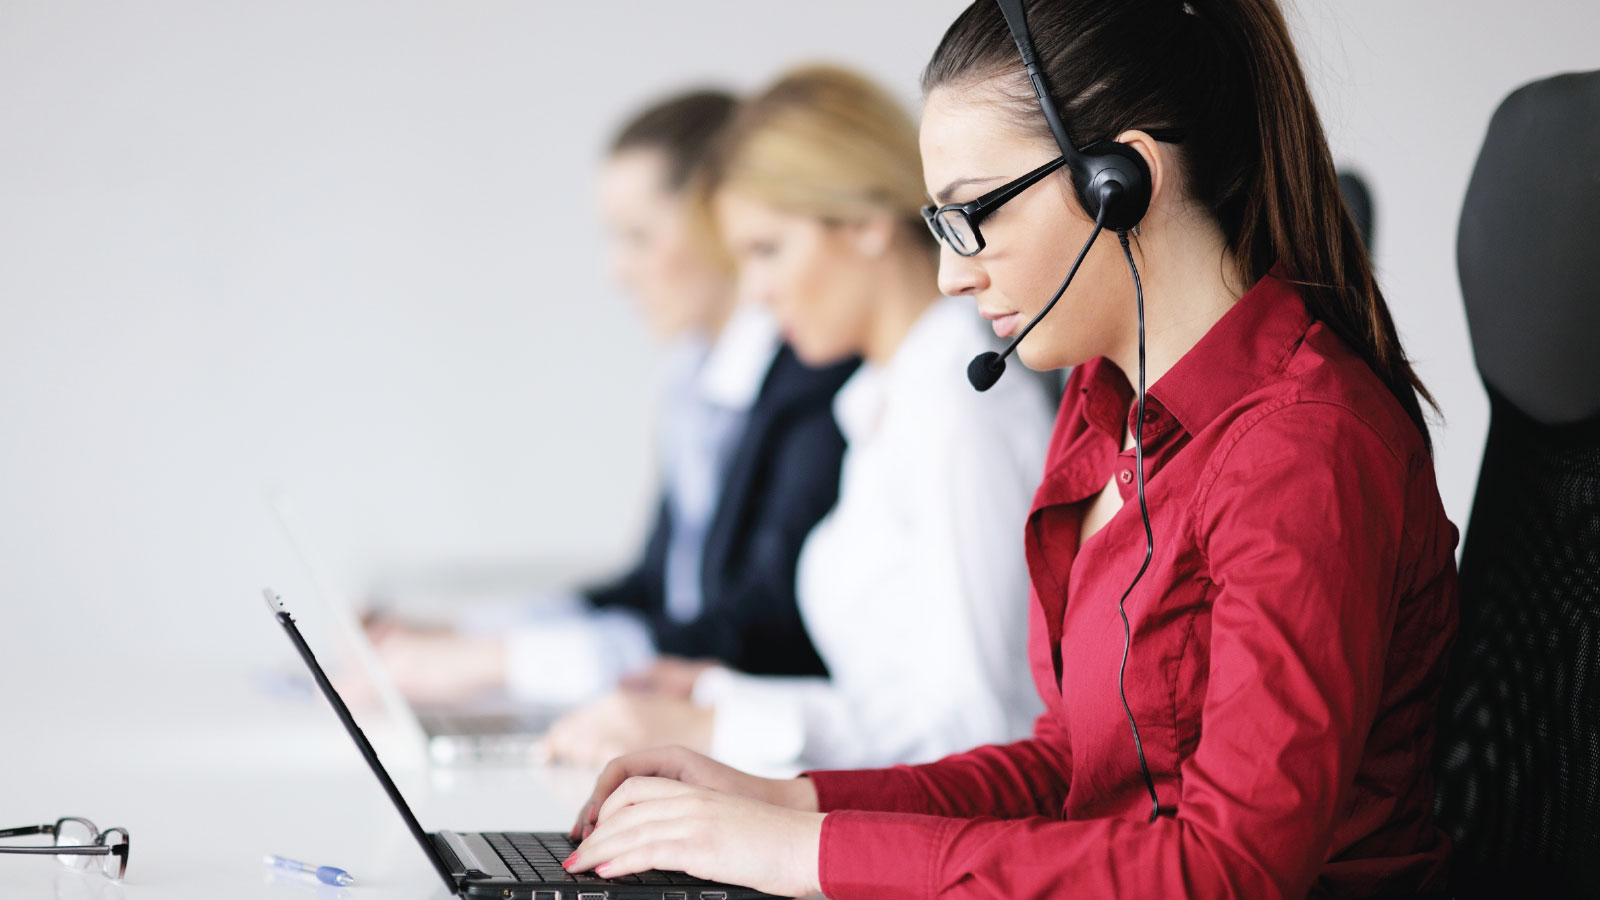 Behavioral Signals Emotion & Behavioral Recognition for Call Centers